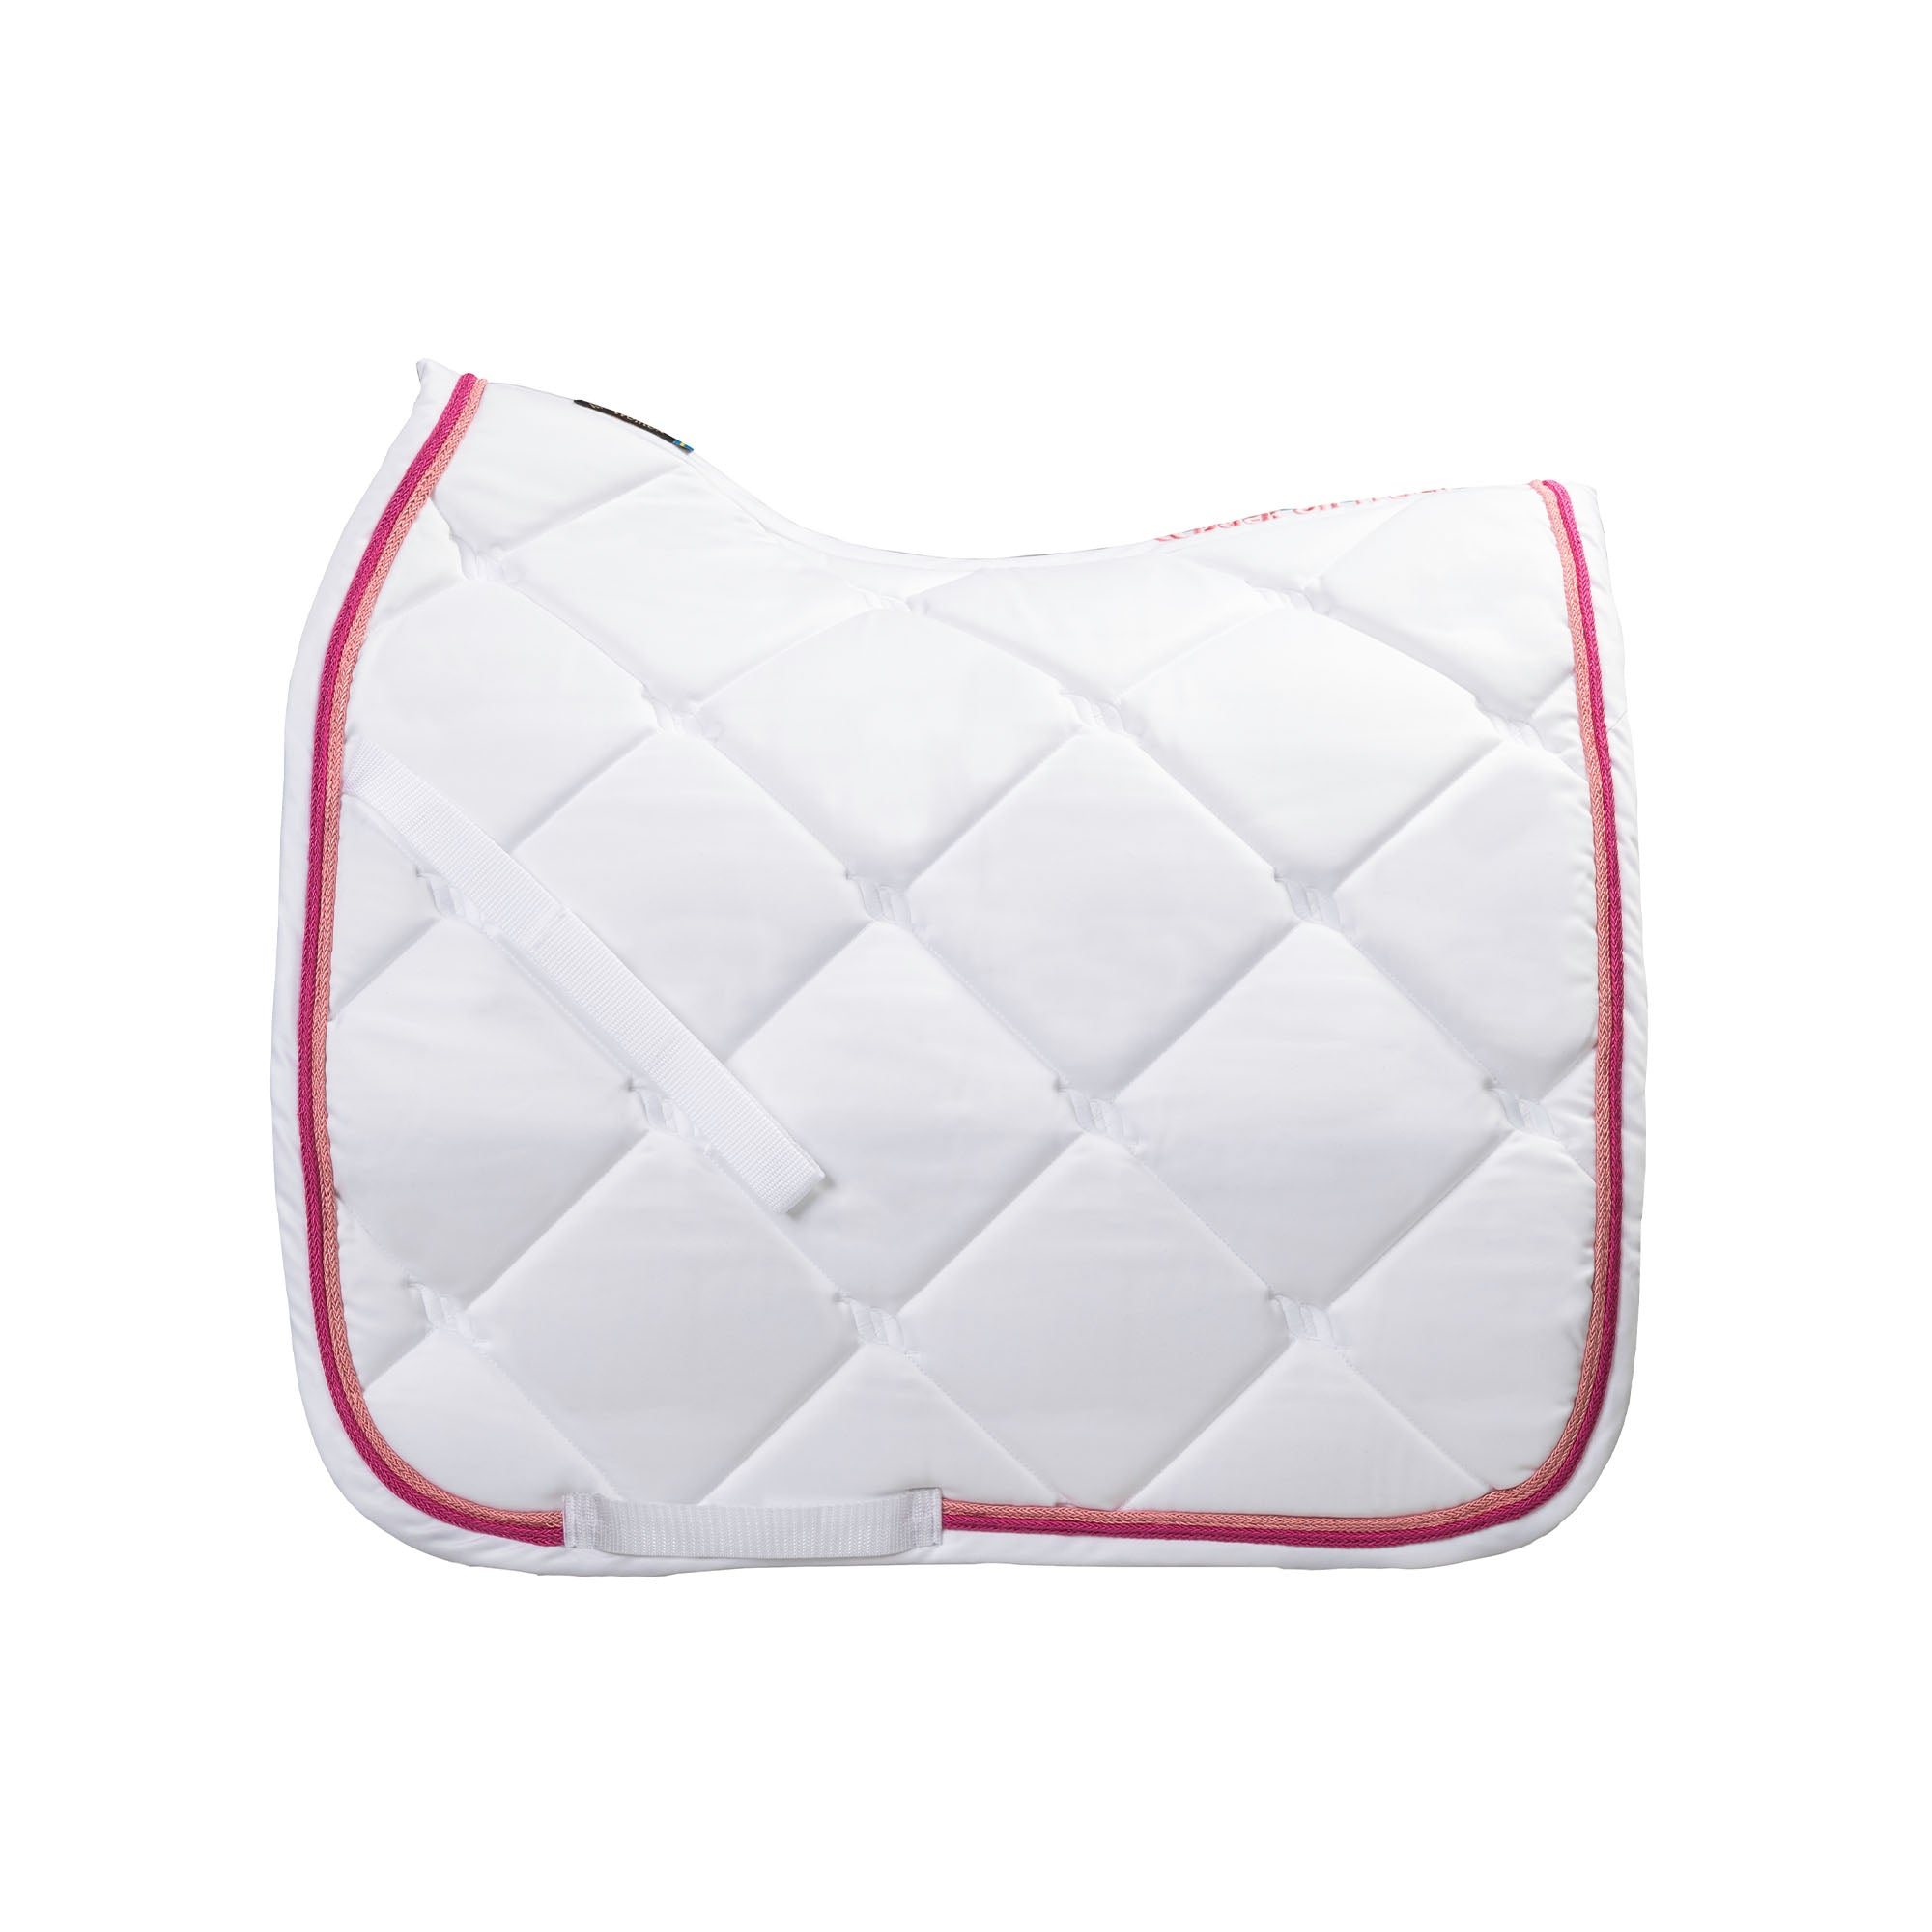 Ribbon Collection Saddle Pad Dressage